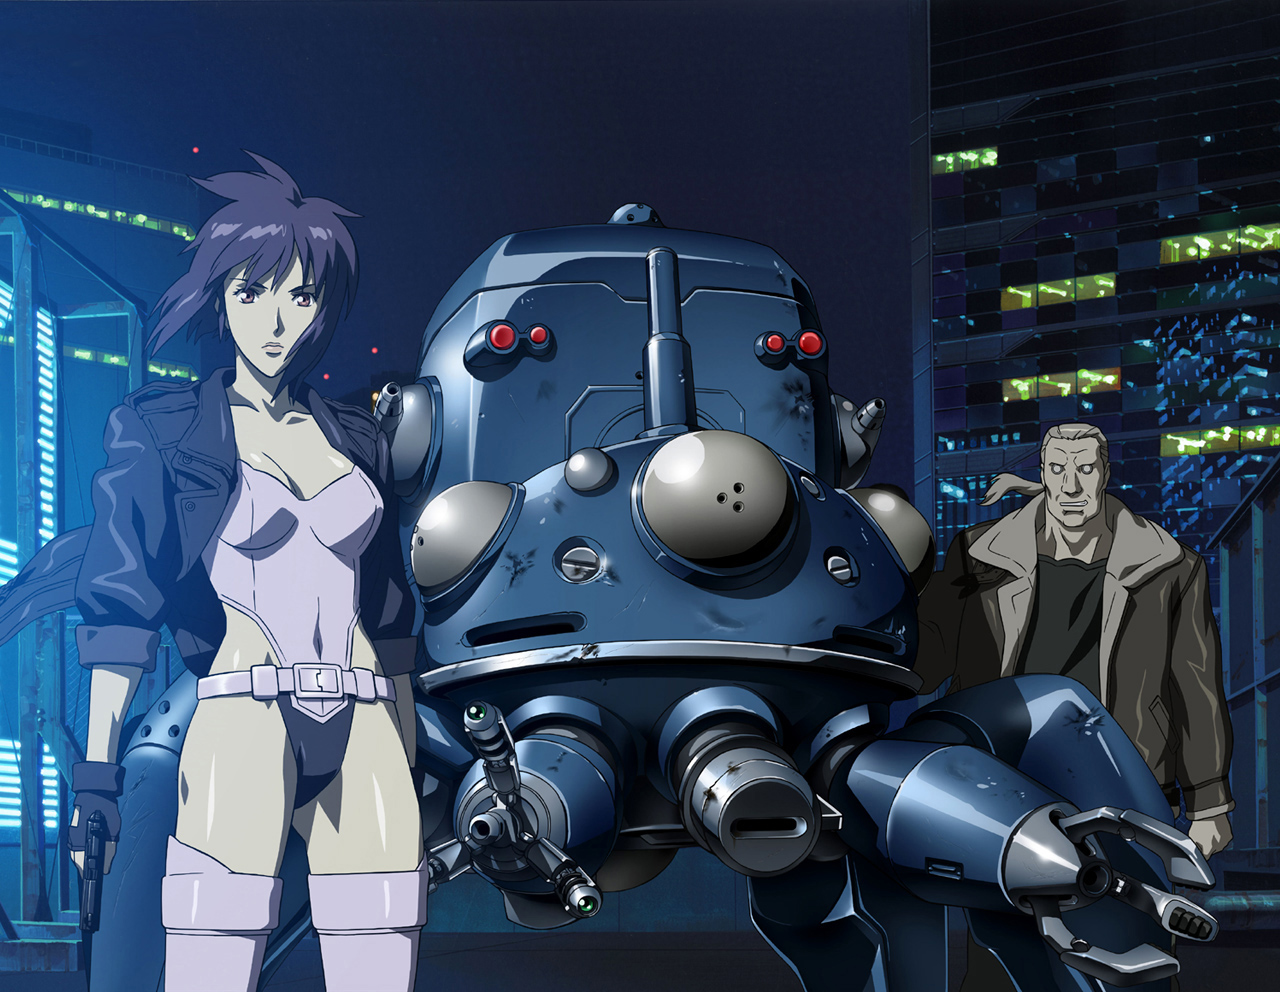 edelweiss anime best could motoko still though style shirow version some alone 2013 arise shell yeah stand ghost redesign complex